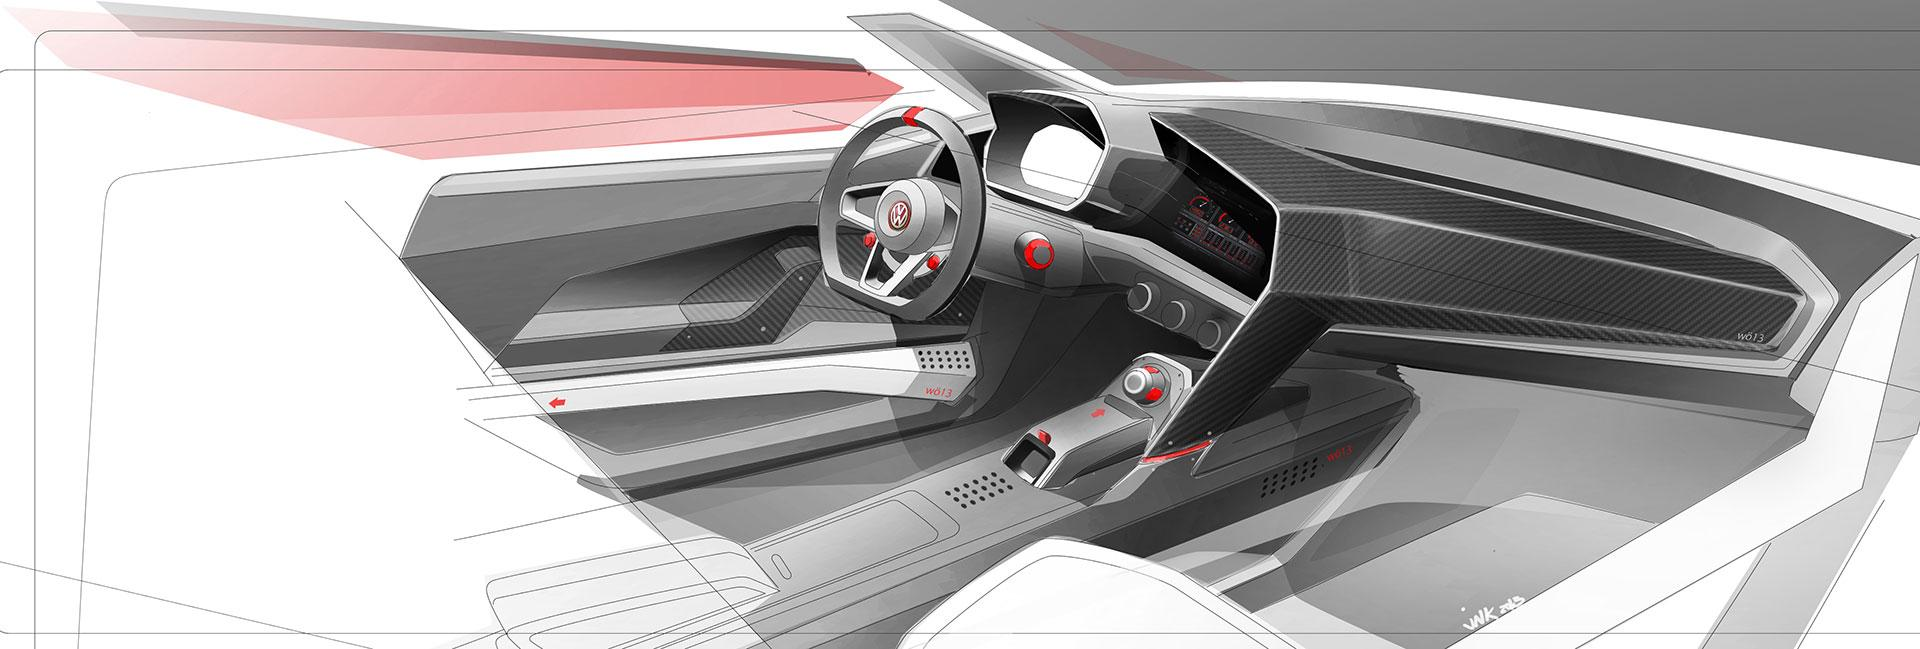 Remarkable Interior Design Vision GTI 1920 x 649 · 140 kB · jpeg